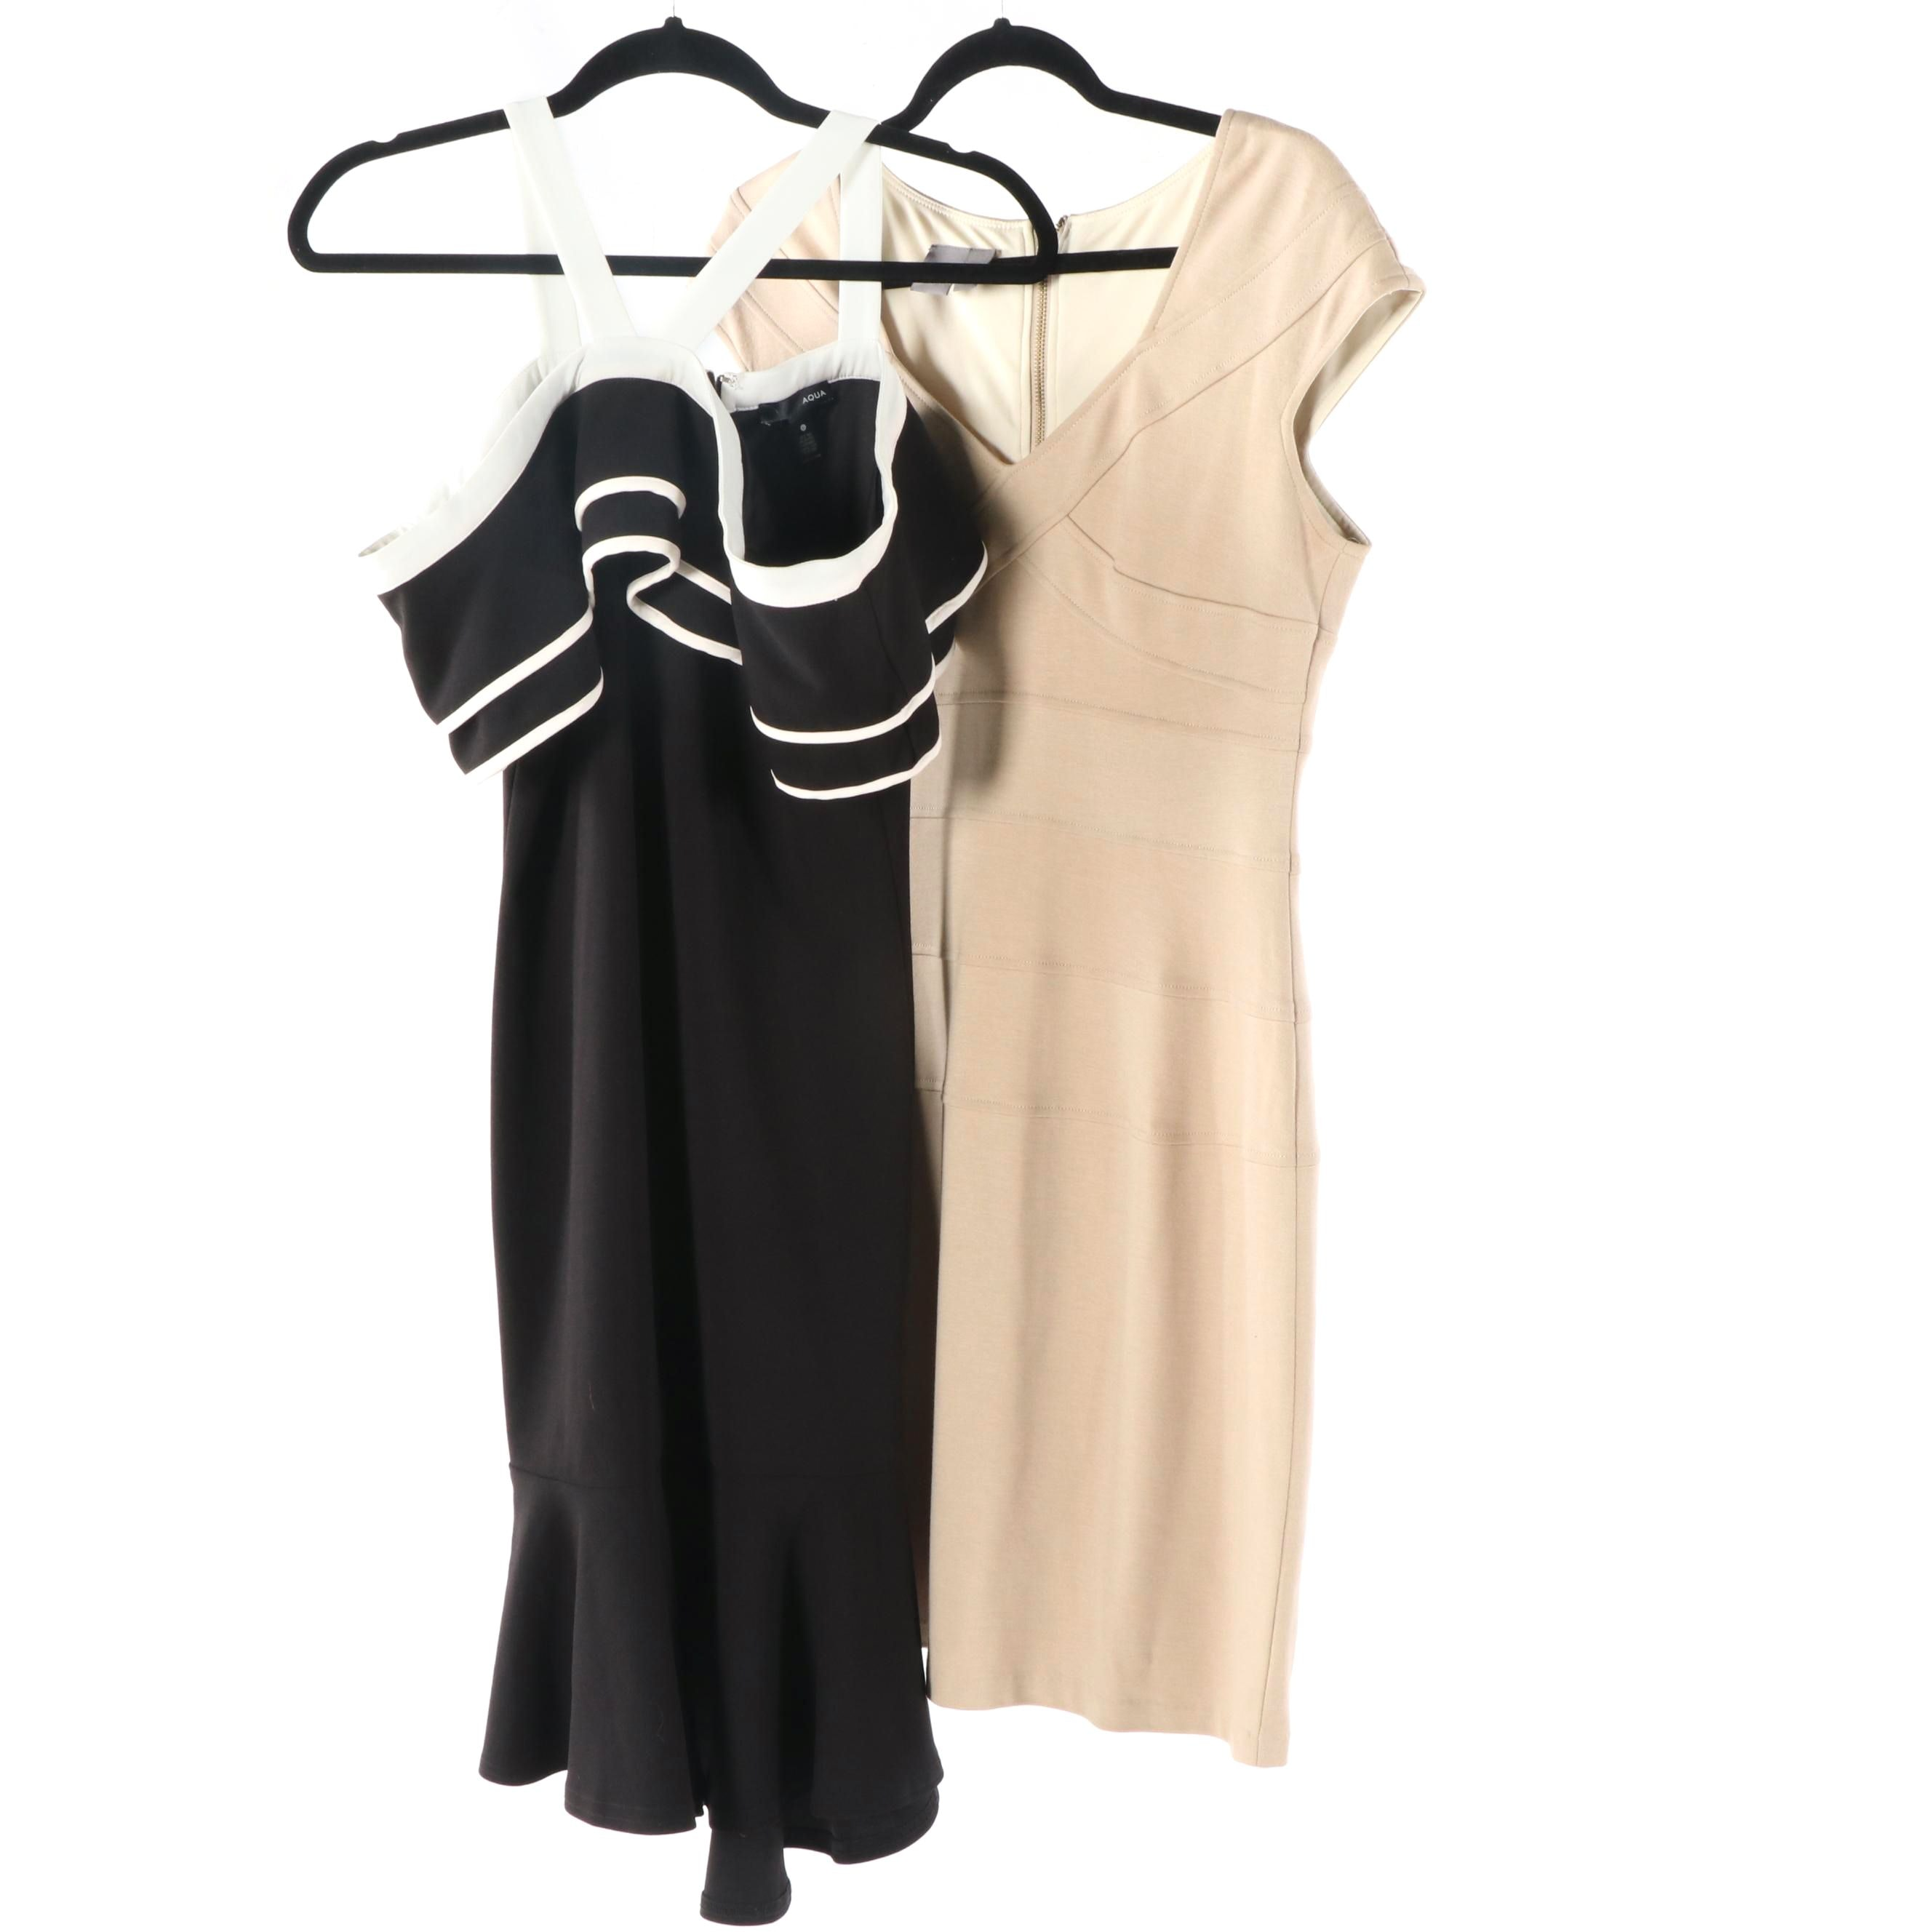 Aqua Black and White Sleeveless Dress and Muse Beige Dress with V-Cut Neckline